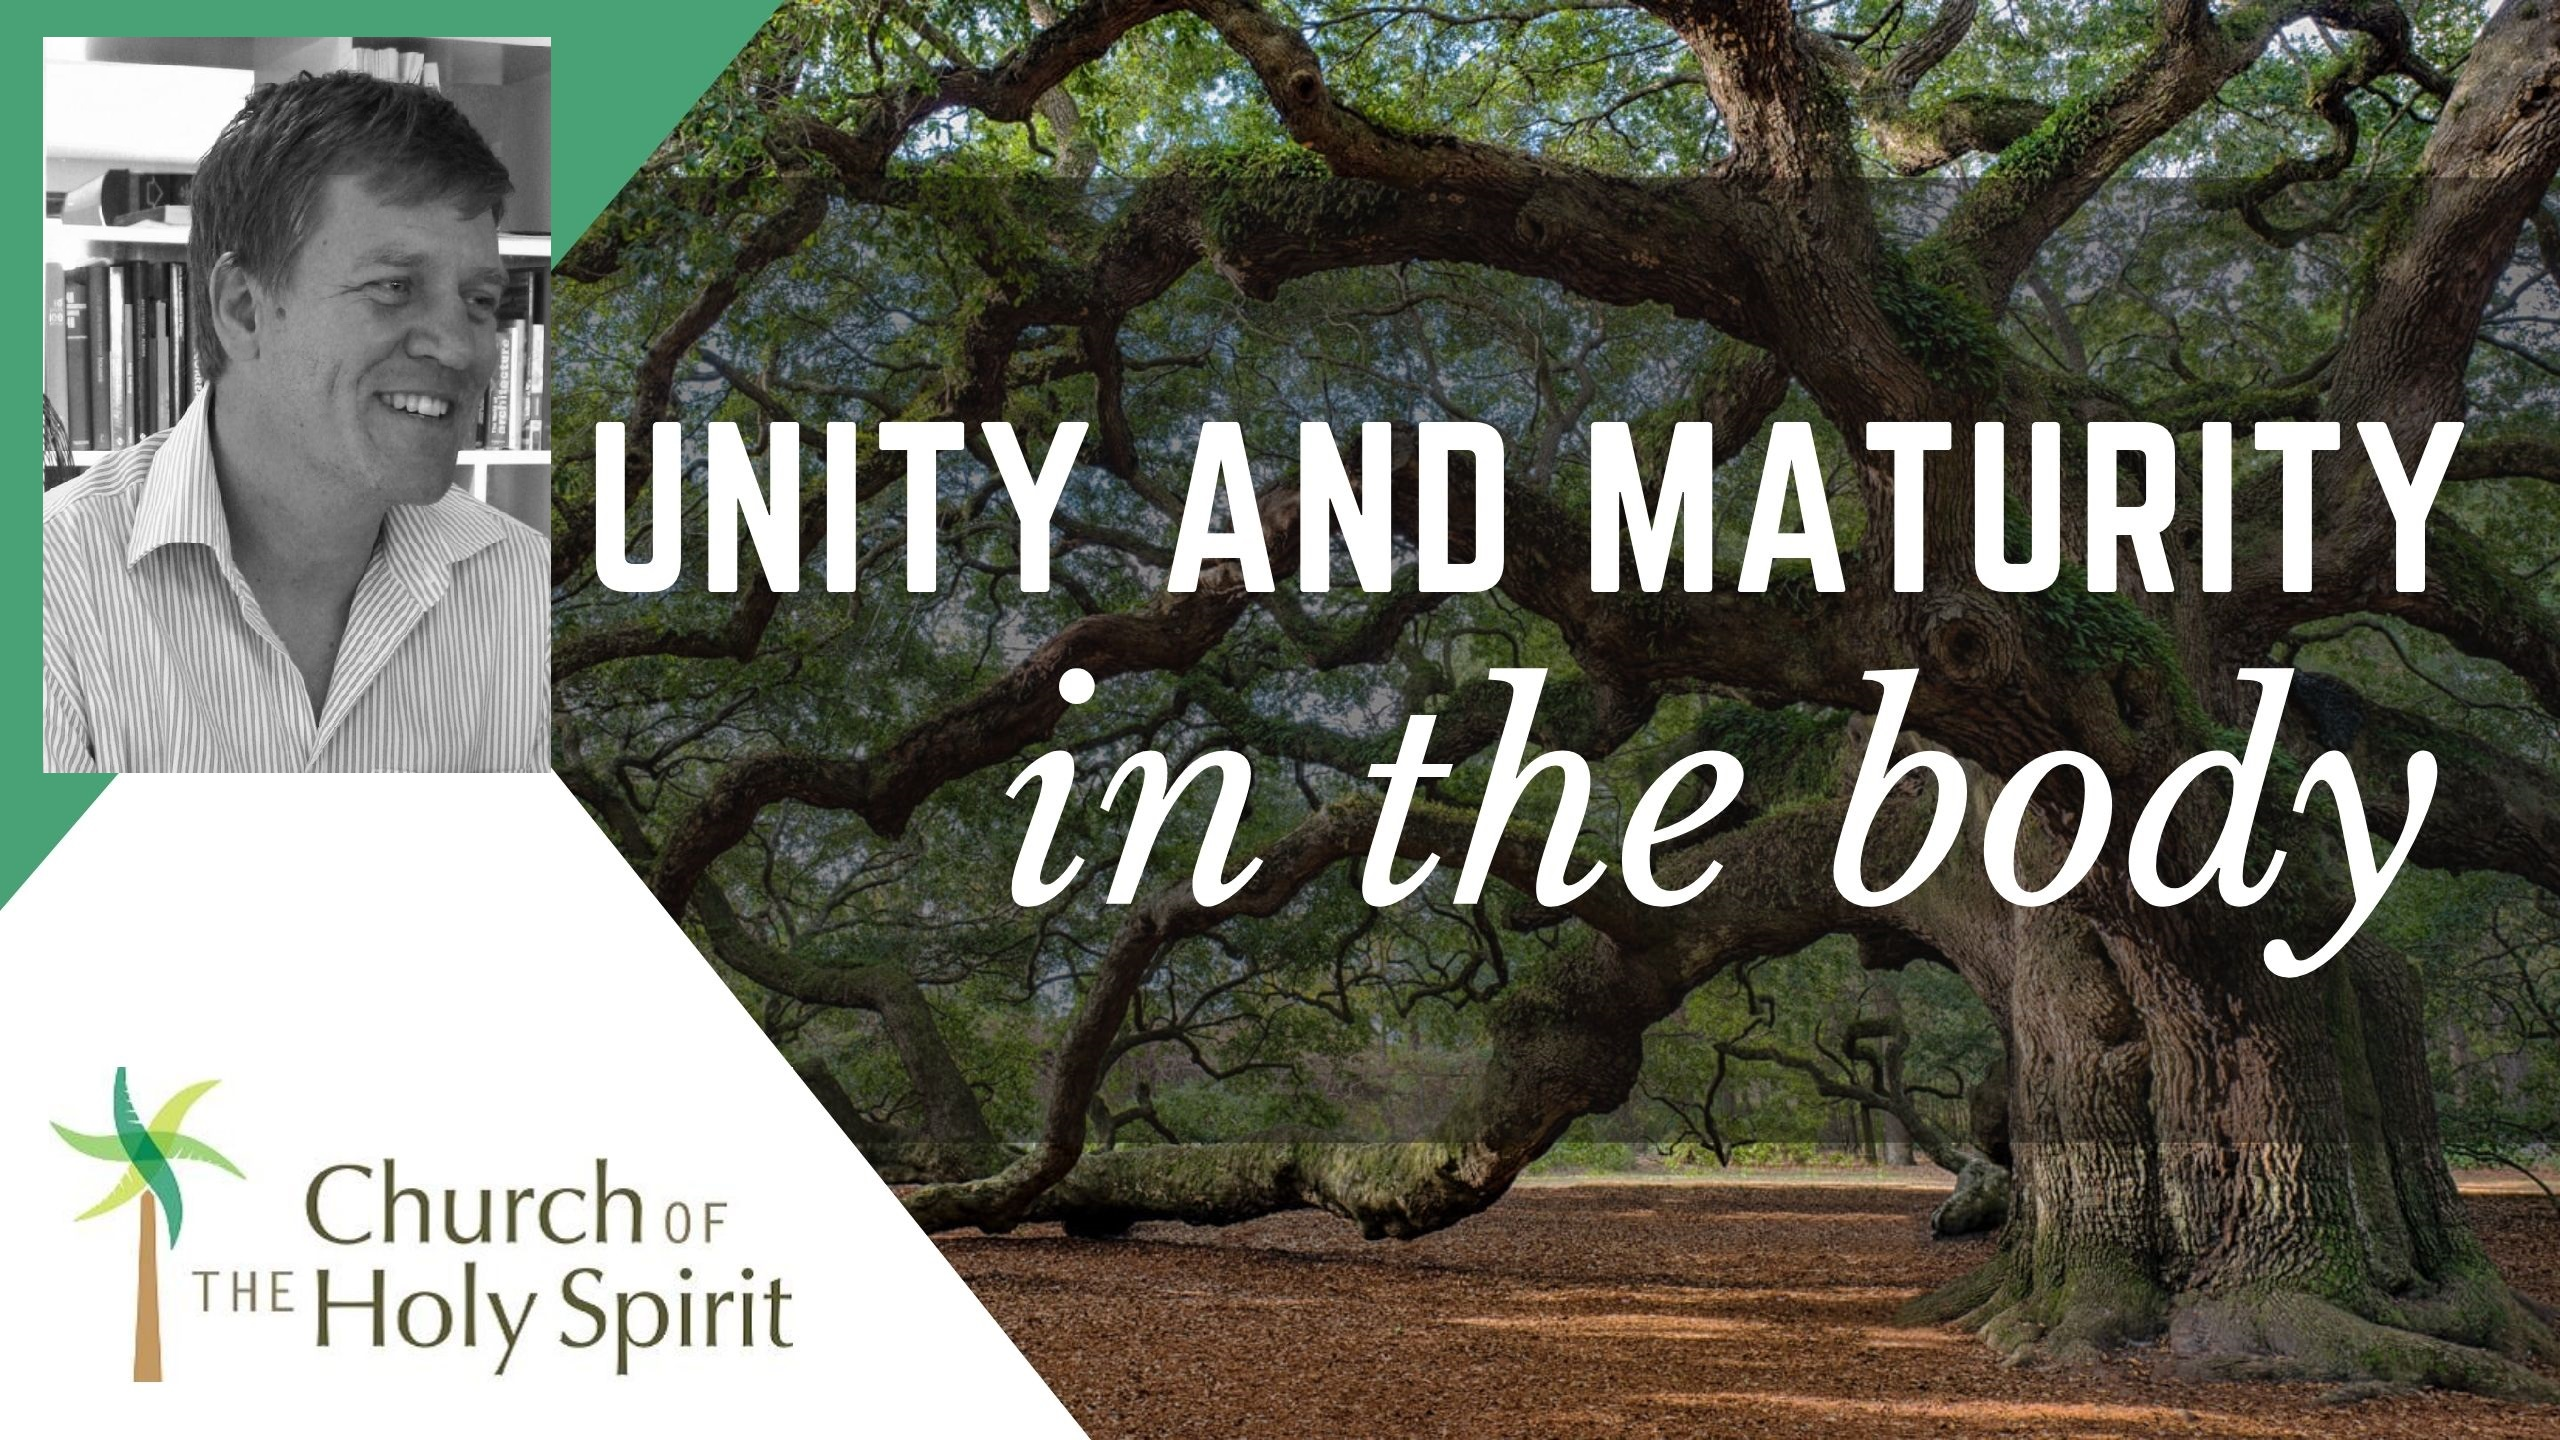 Unity and maturity in the body